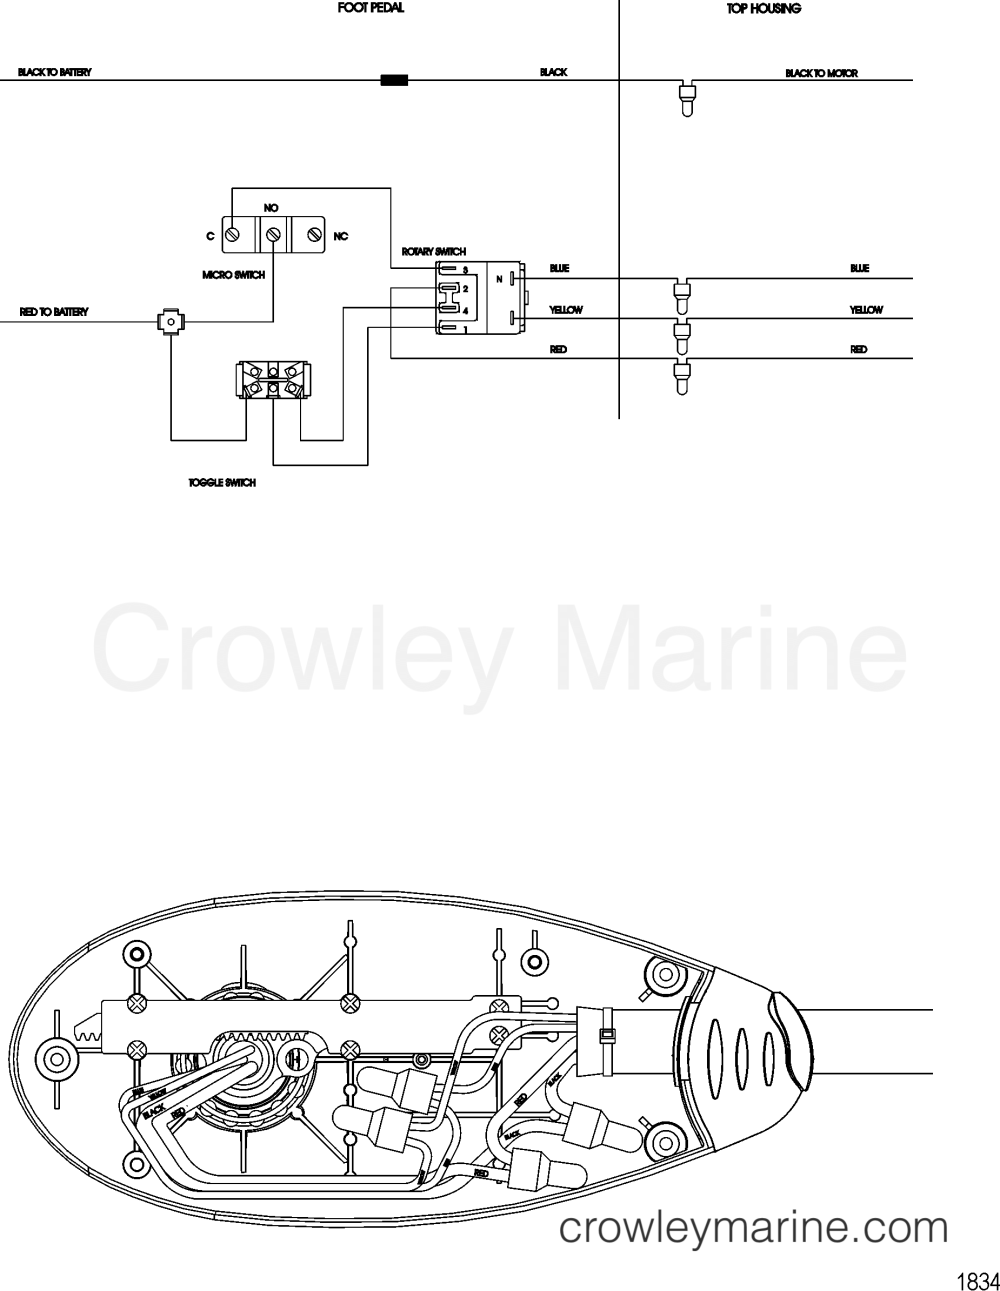 medium resolution of wire diagram brute 52fb 12 volt 2007 motorguide 12v motorguide rh crowleymarine com brute force 650 wiring diagram brute snowblower wiring diagram